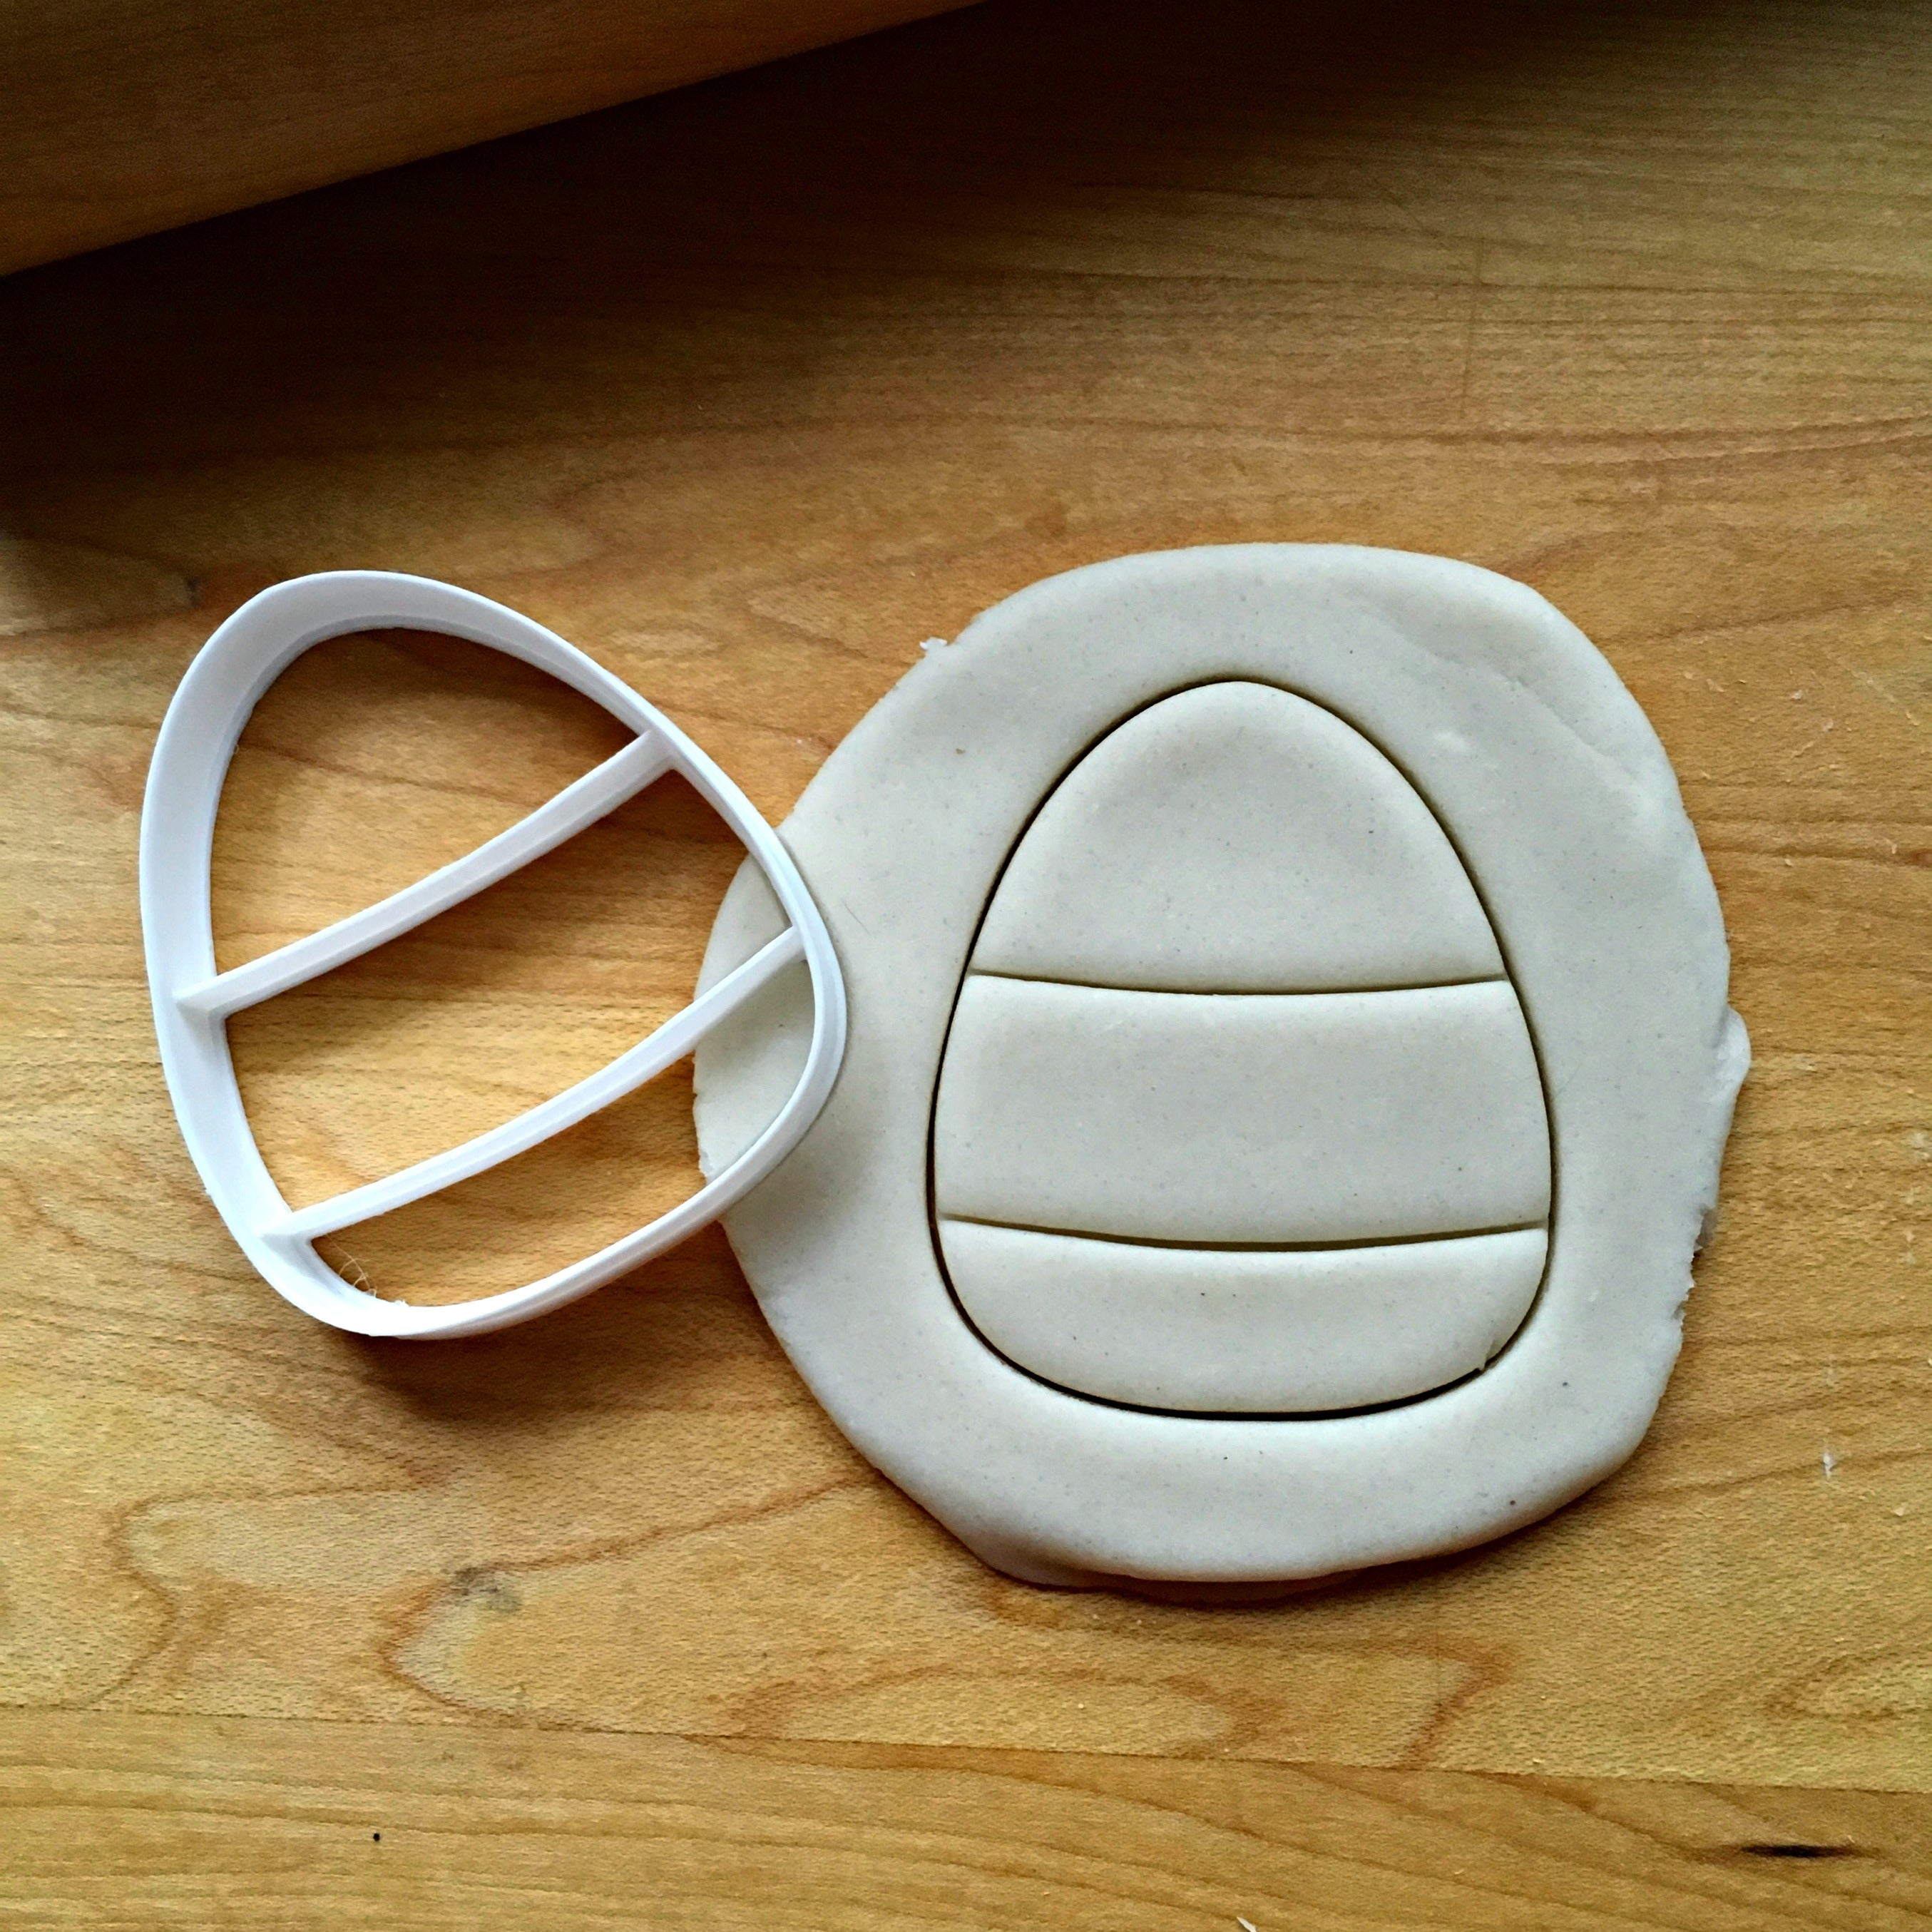 Candy Corn Cookie Cutter/Dishwasher Safe